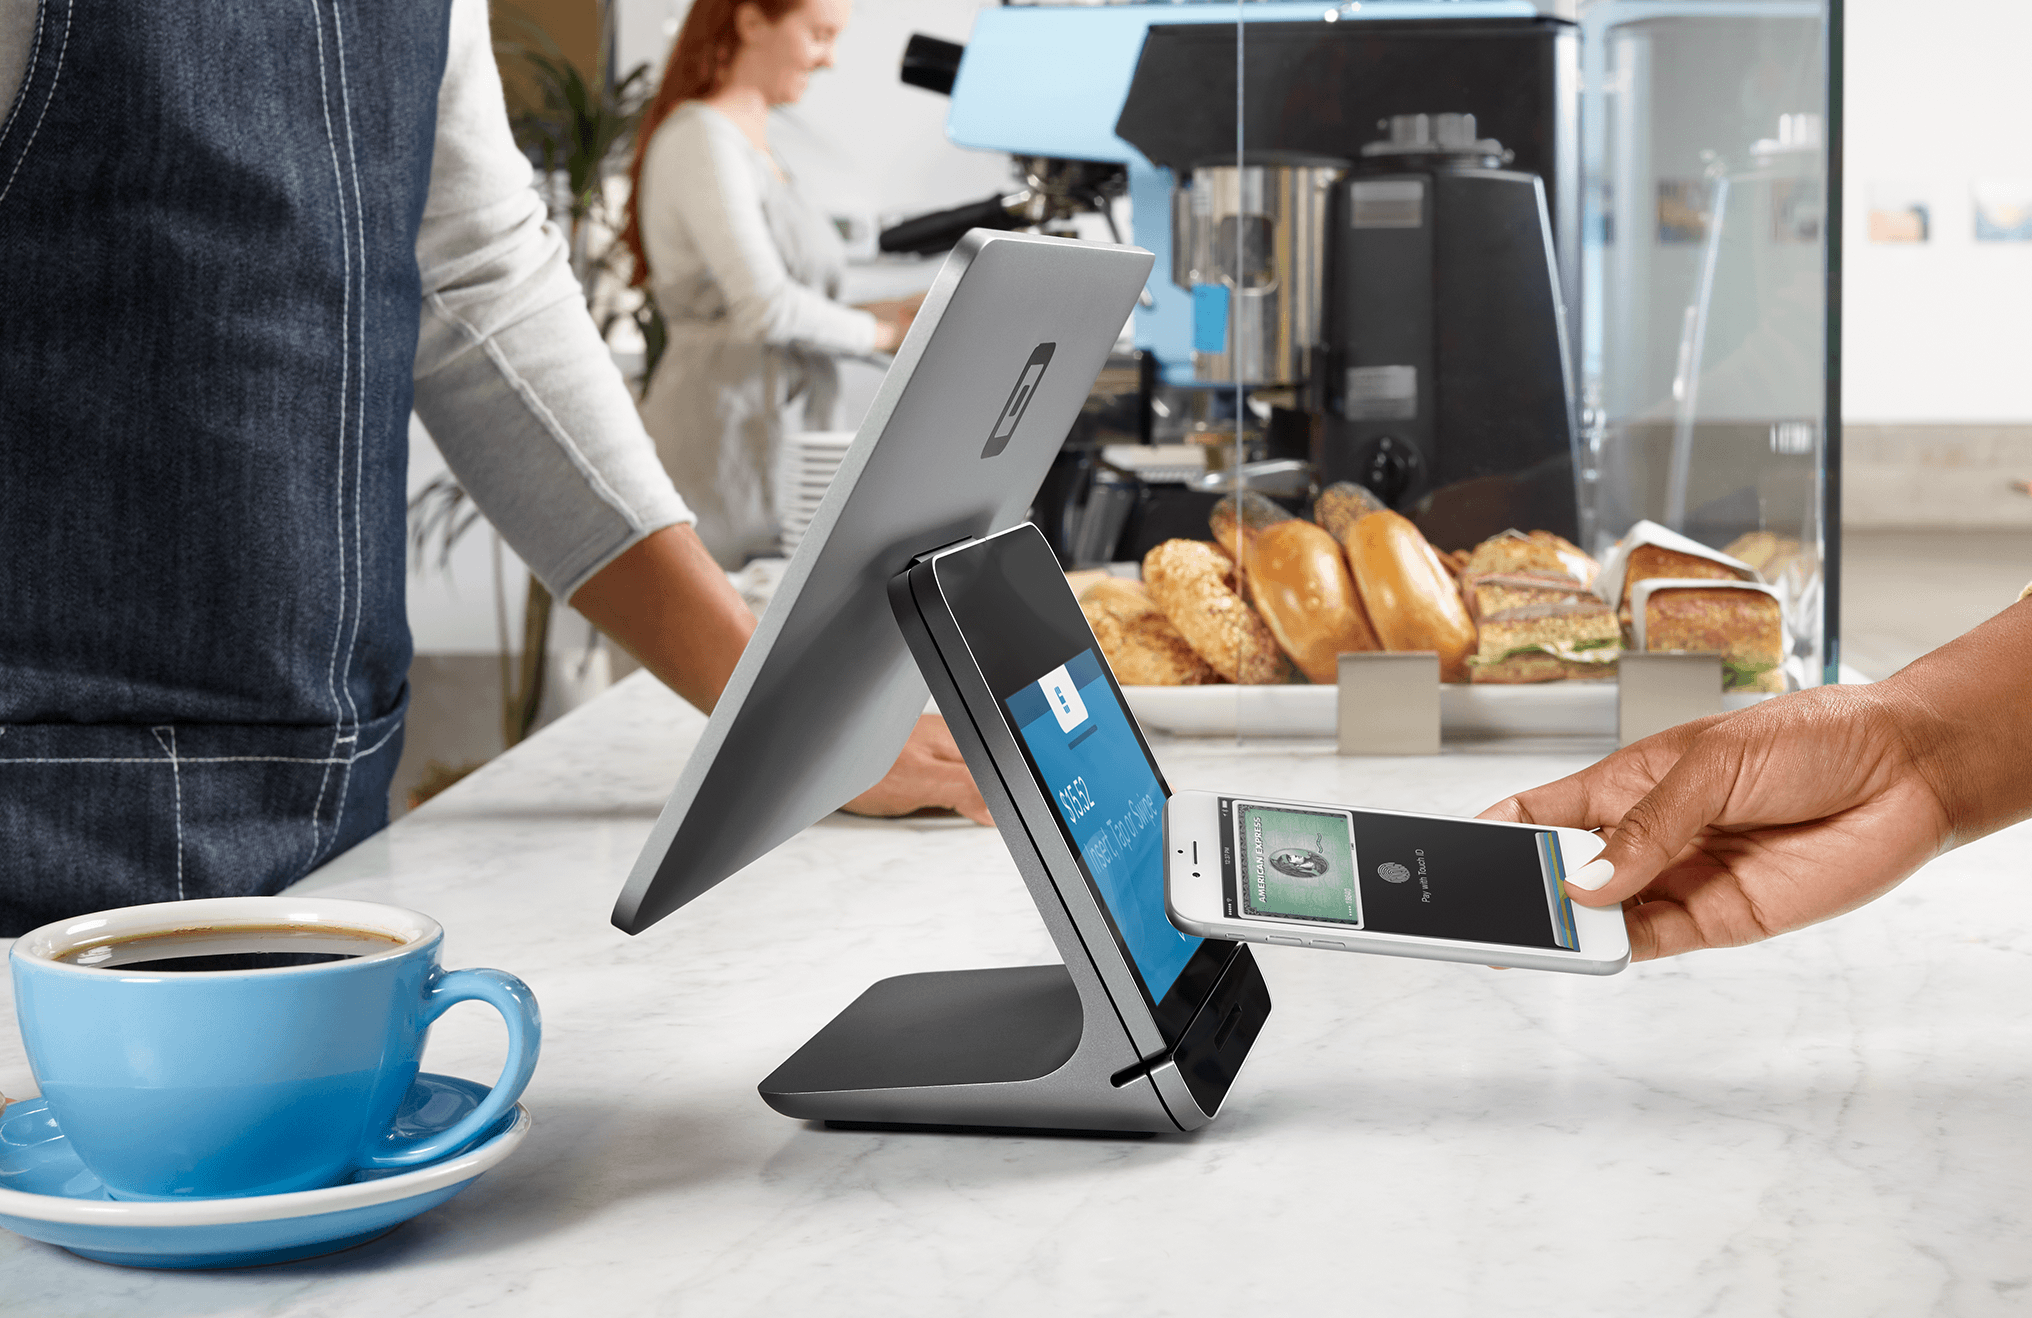 Square Stock Surges to 20-Month High | The Motley Fool